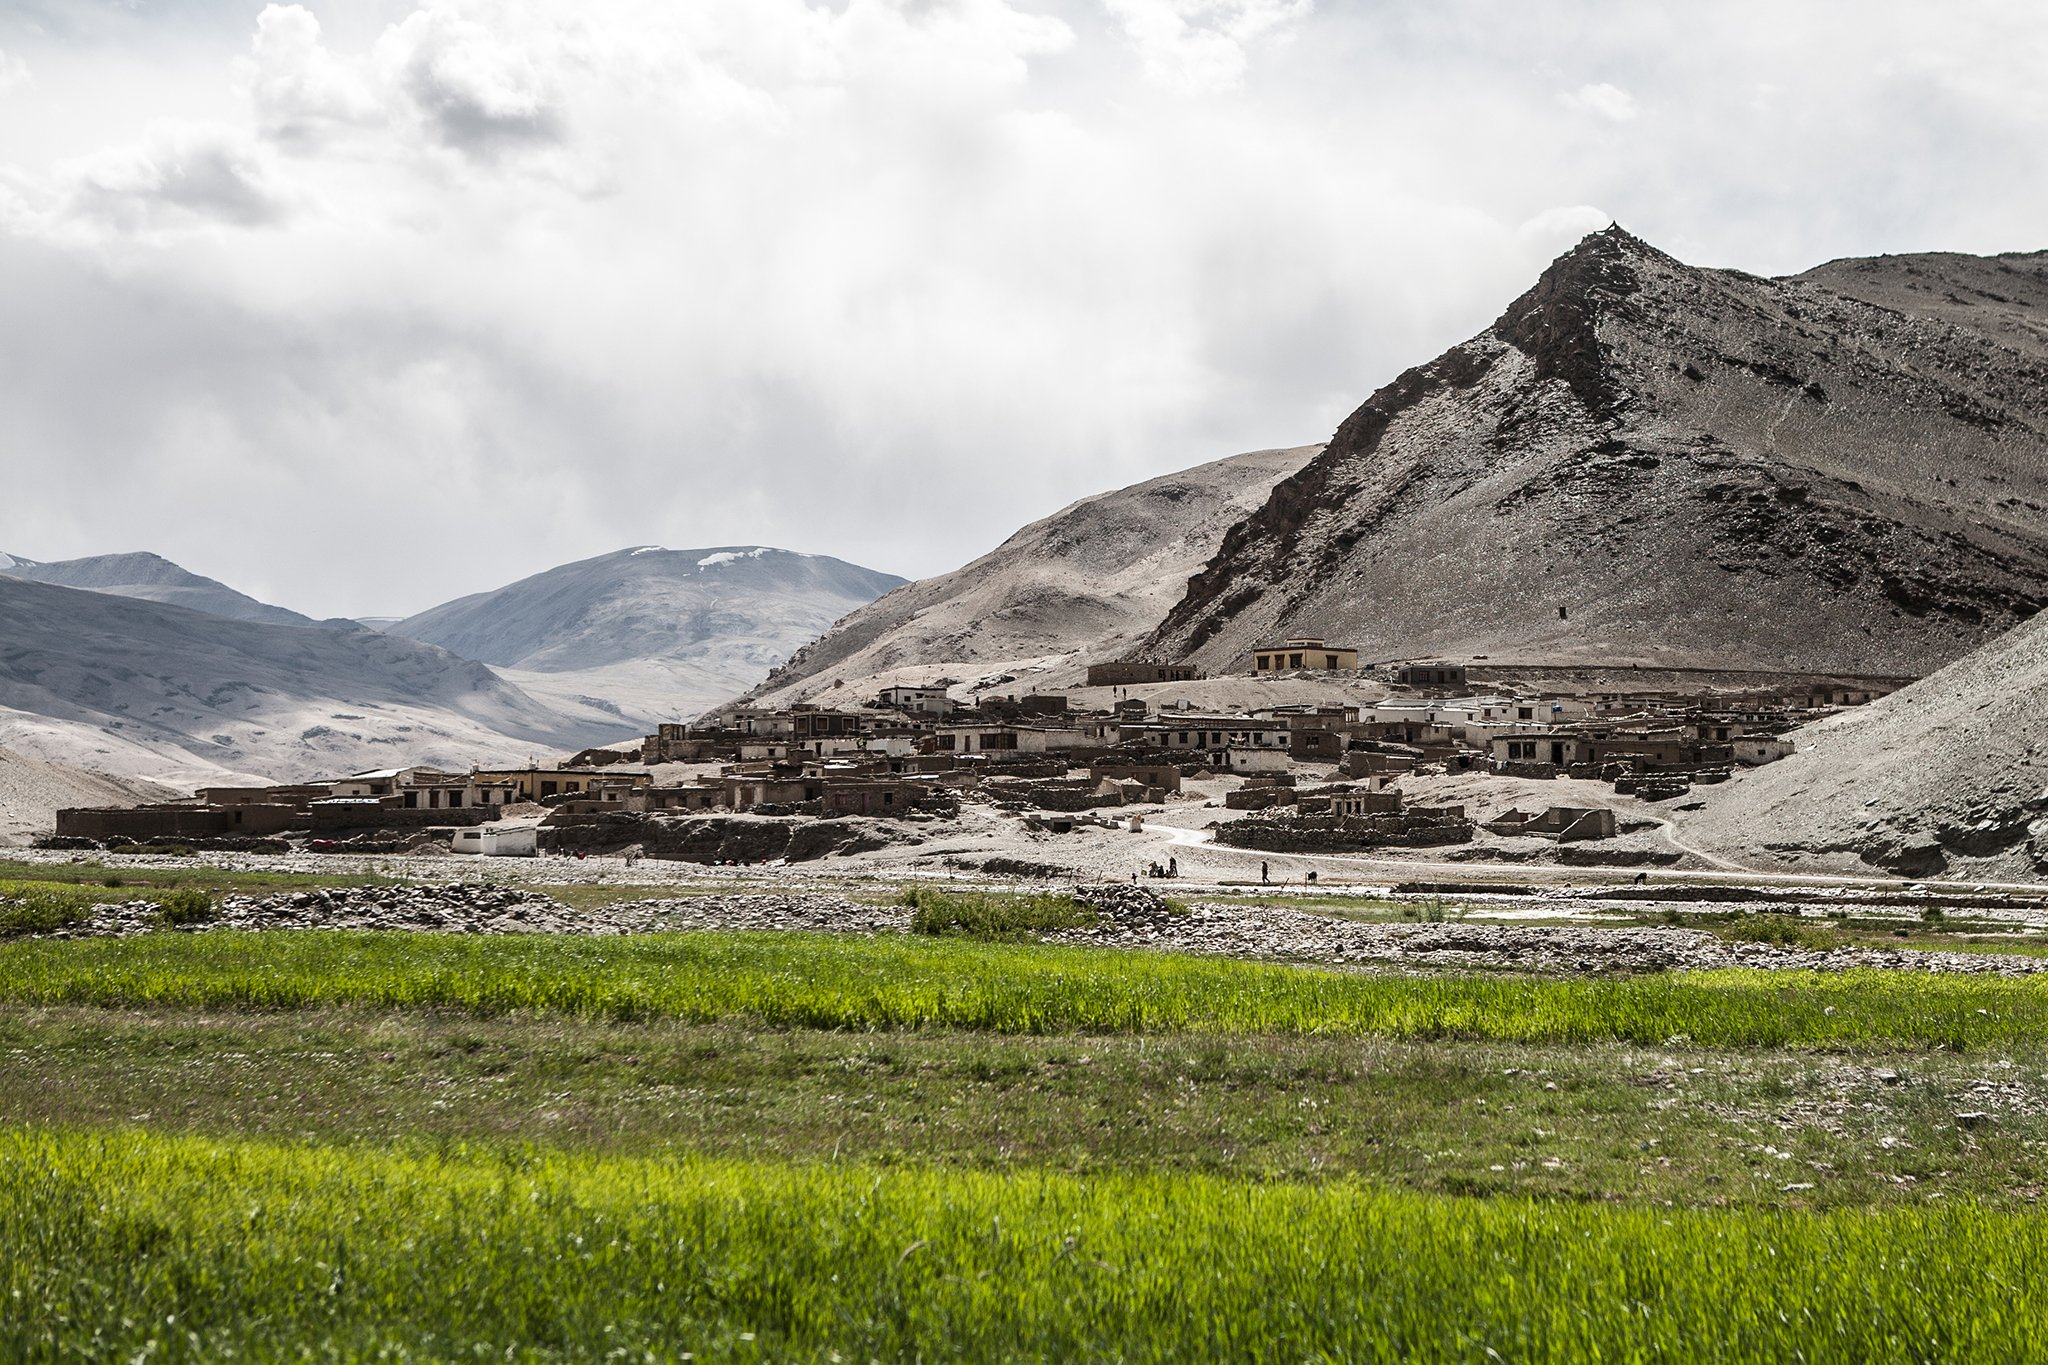 Landscape of villages in Ladakh